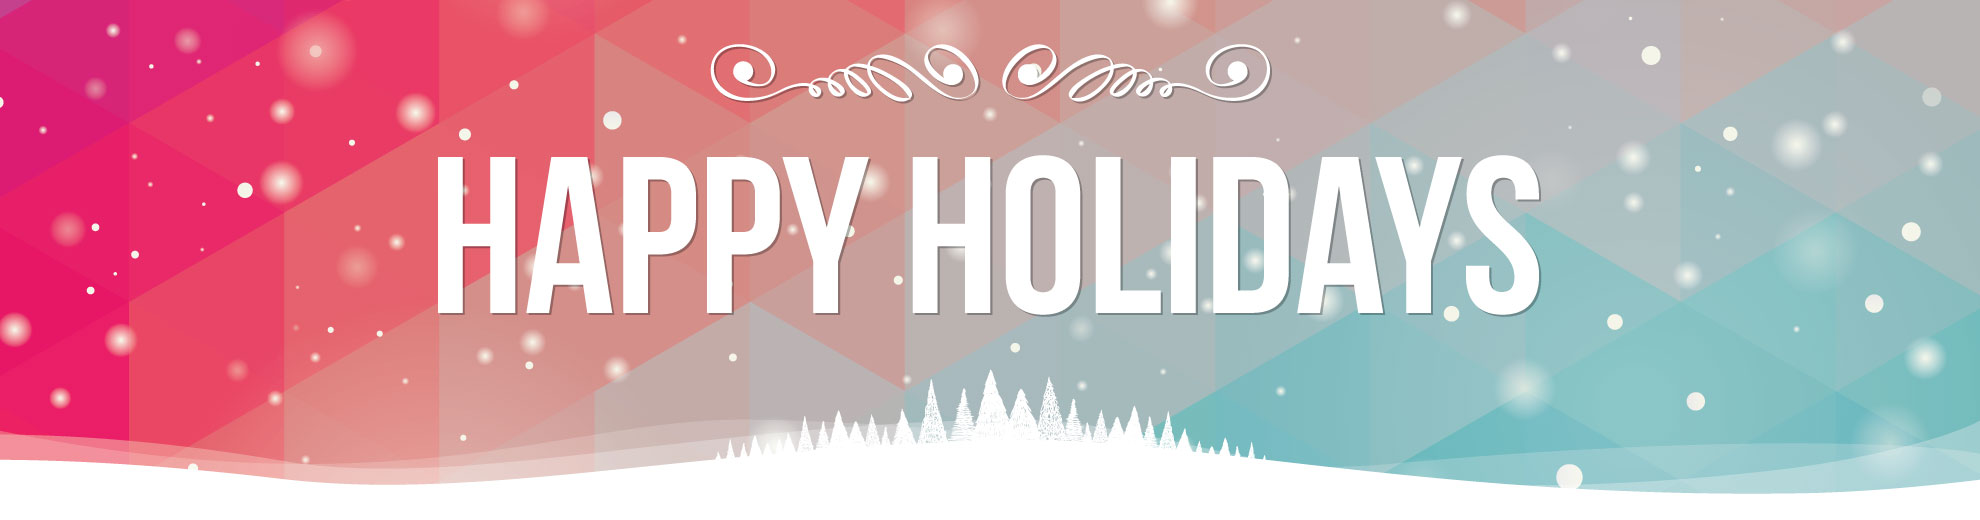 Happy Holidays and Seasons Greetings!